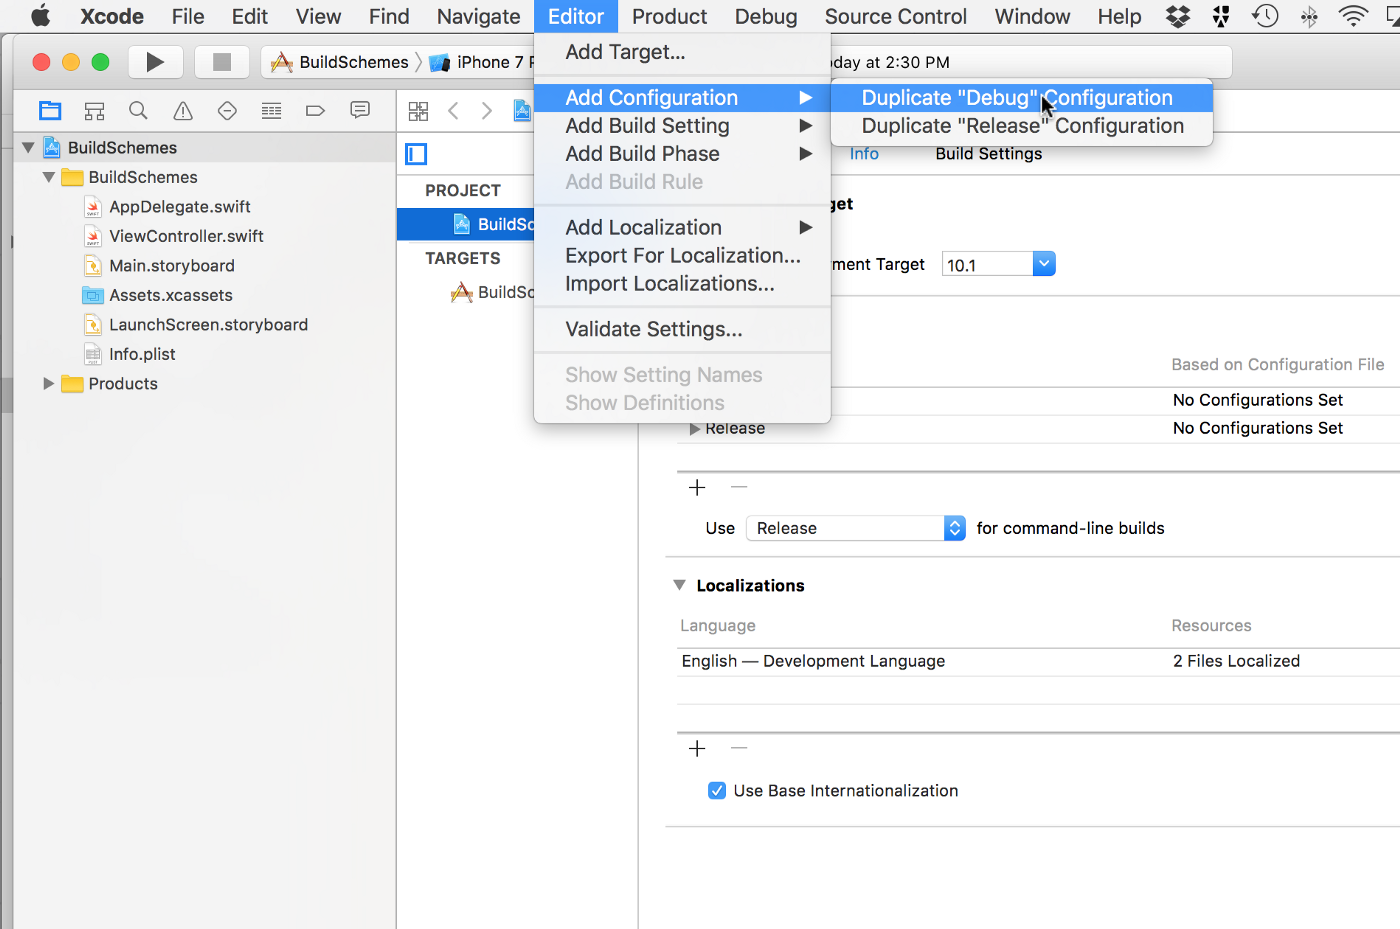 Some Practical Uses for Xcode Build Schemes and Build Configurations